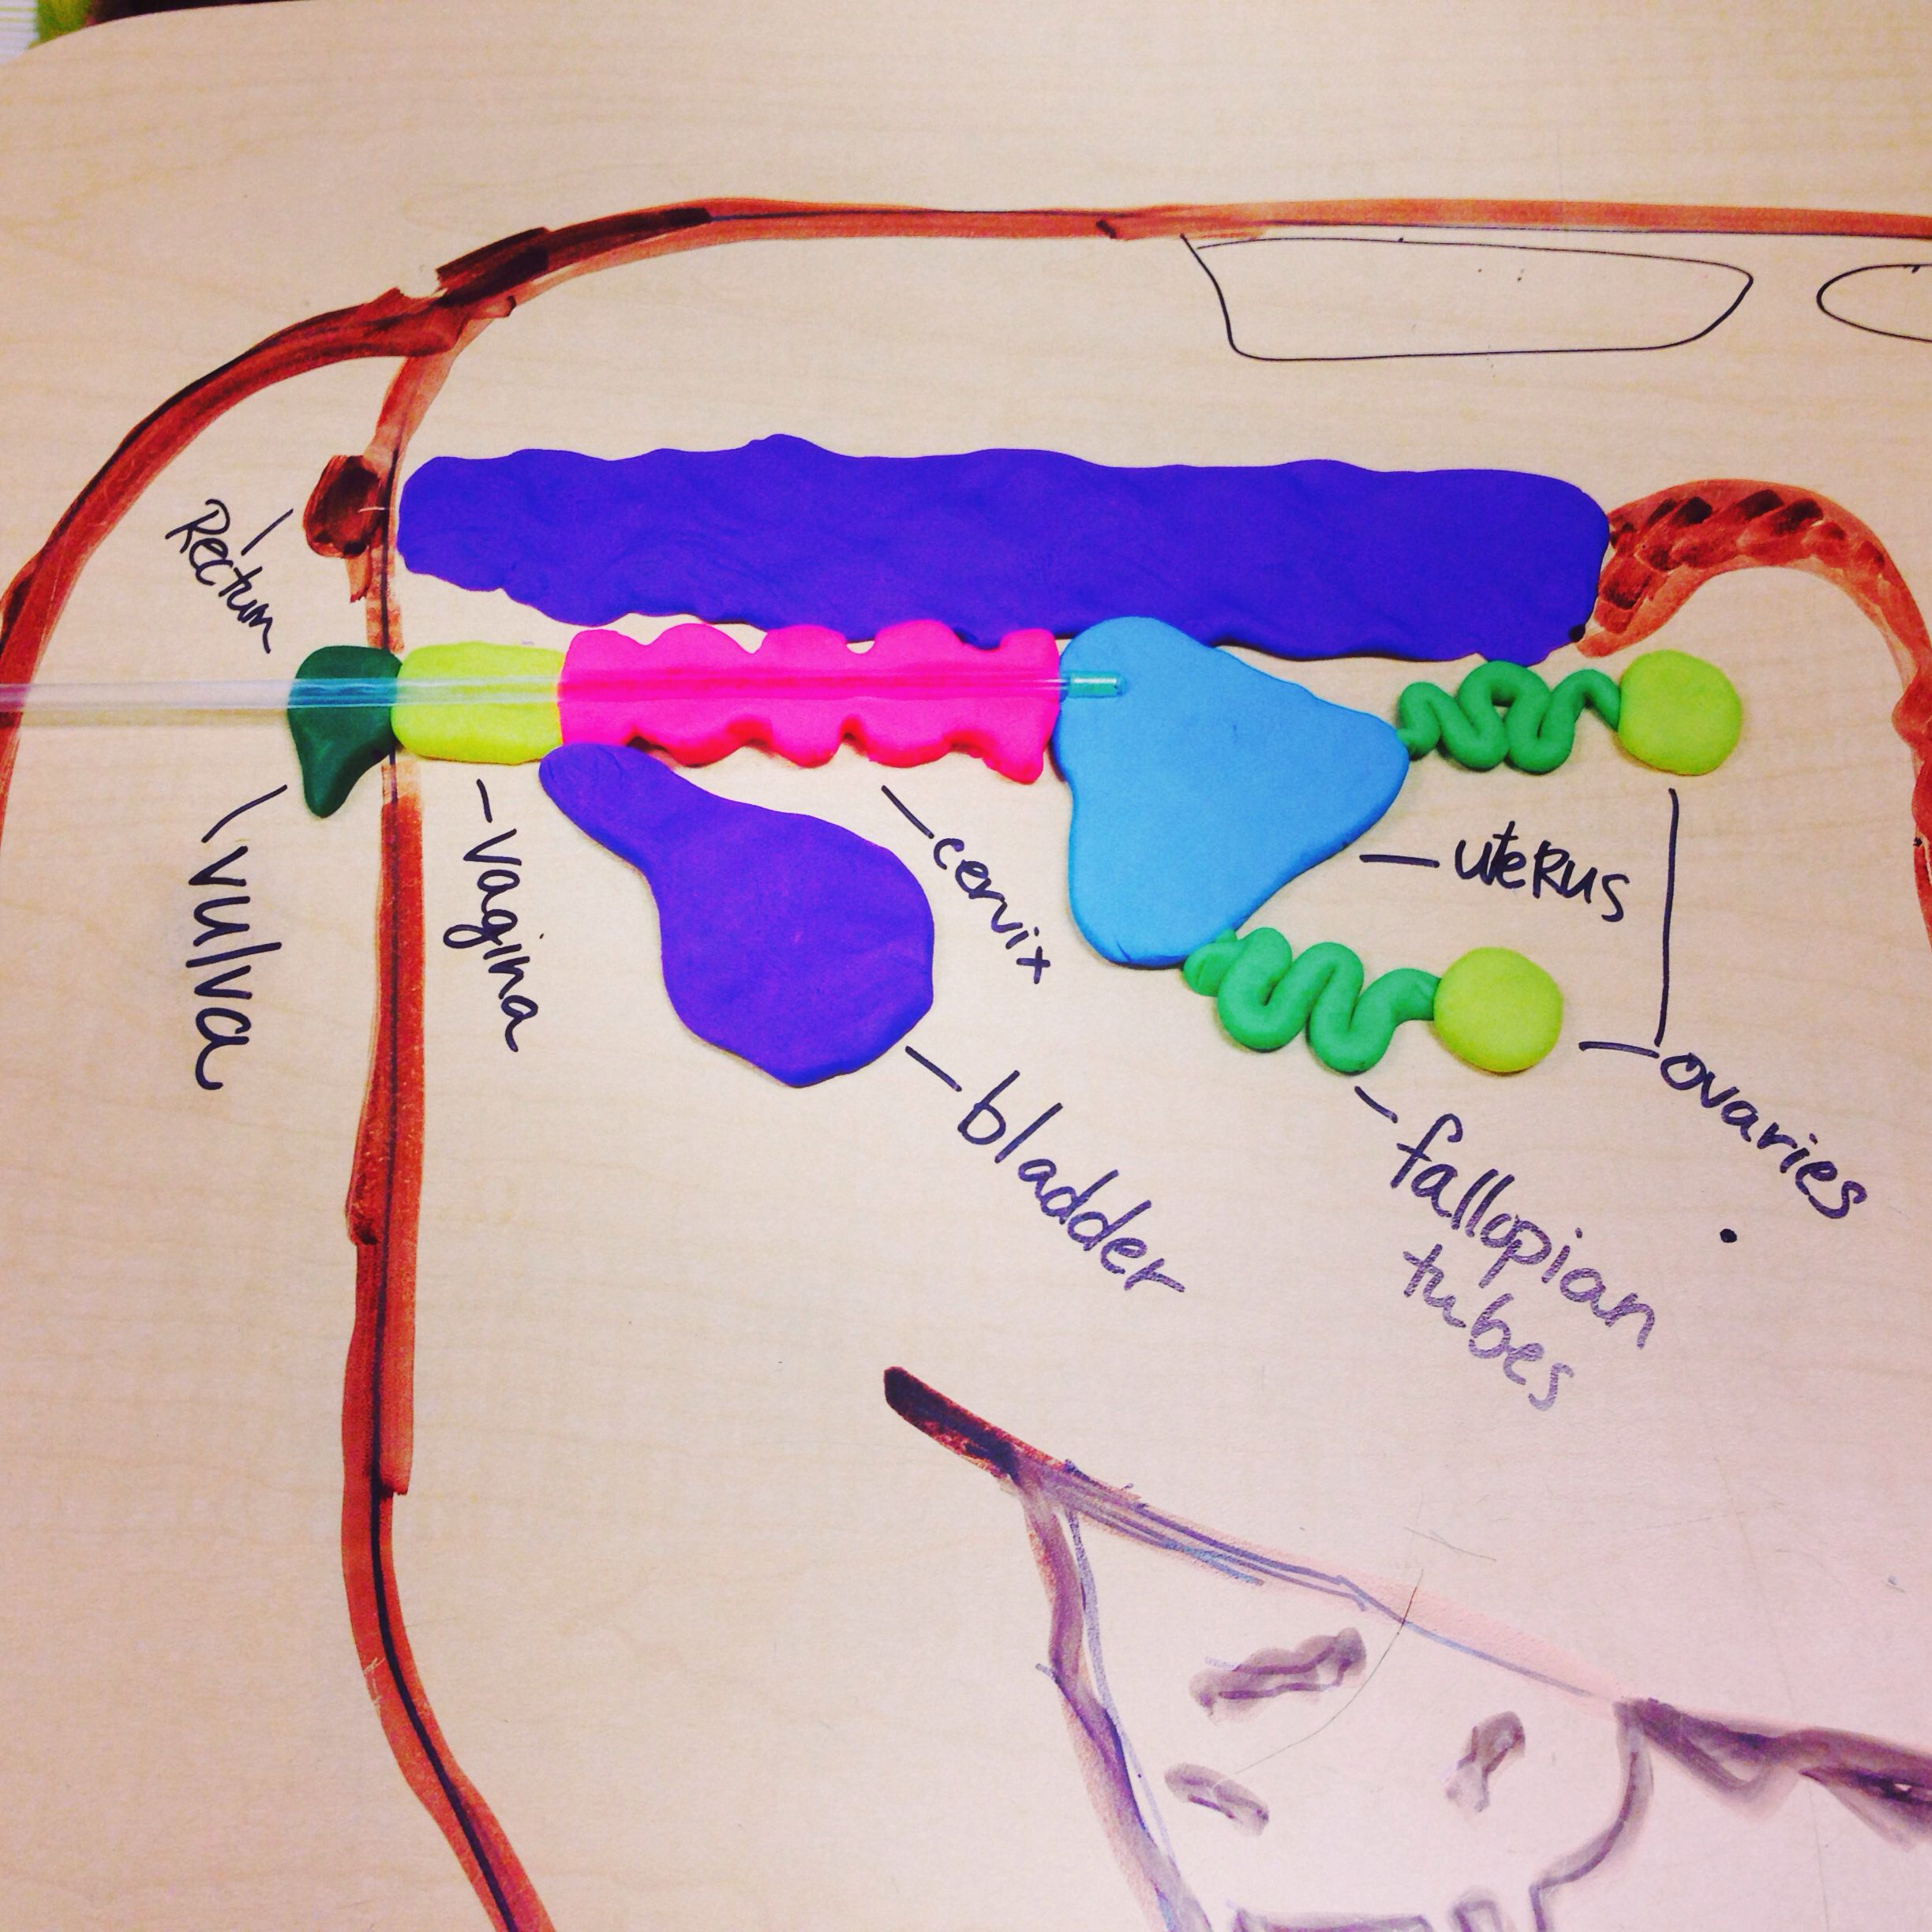 Cow reproductive tract made from play doh. - OLT | Animal Science ...